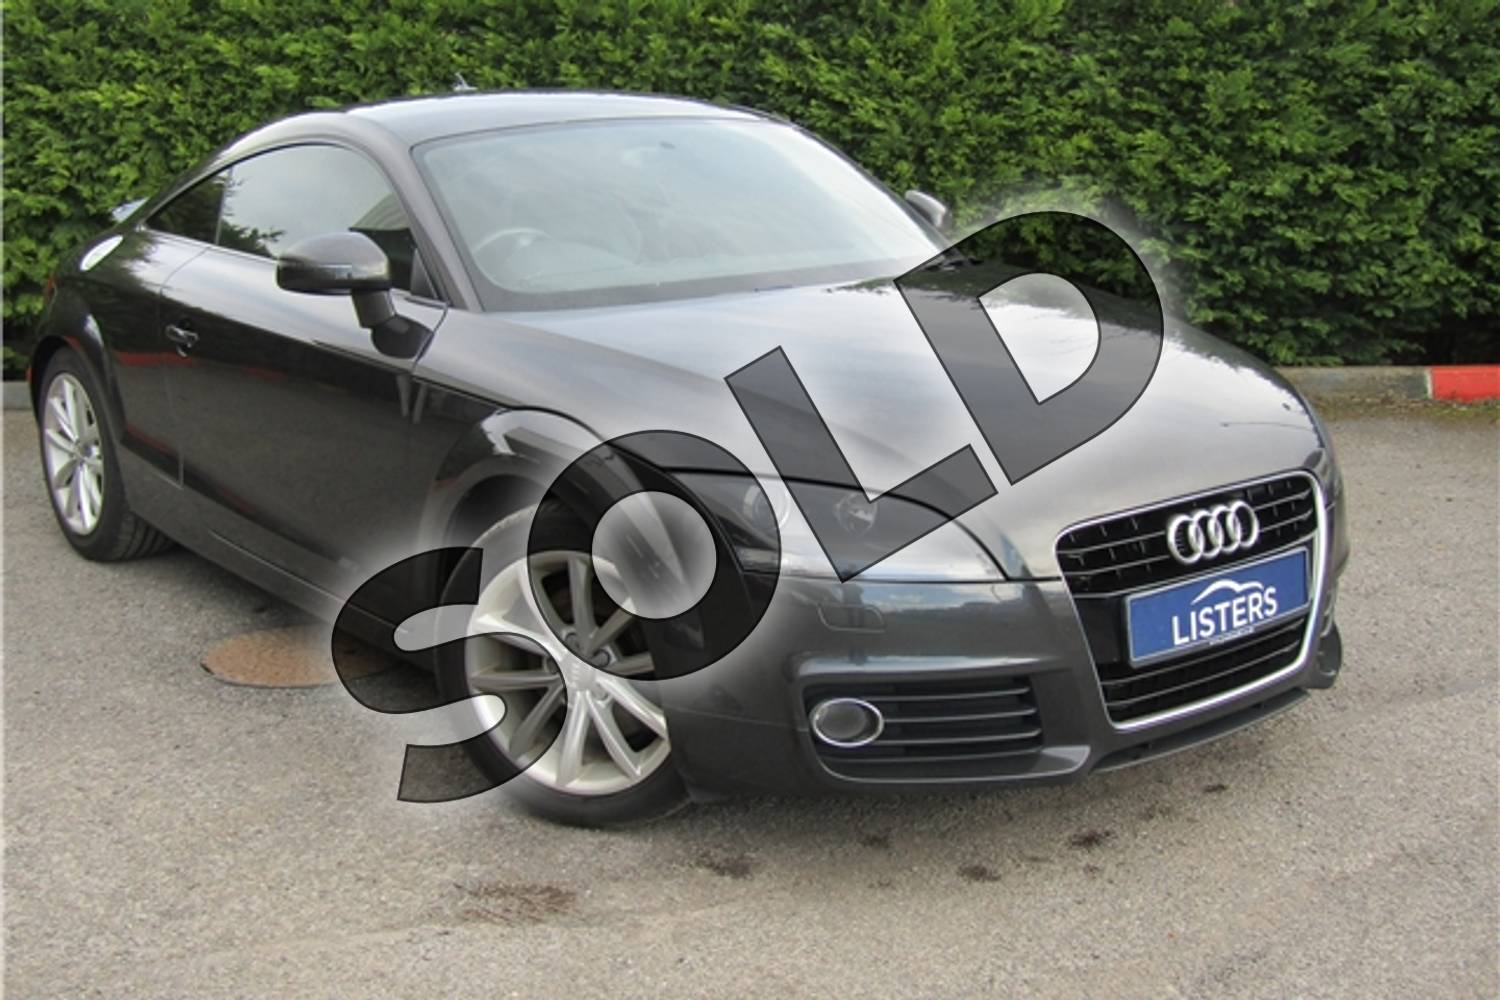 2012 Audi TT Coupe 1.8T FSI Sport 2dr in Metallic - Oolong Grey at Listers U Boston